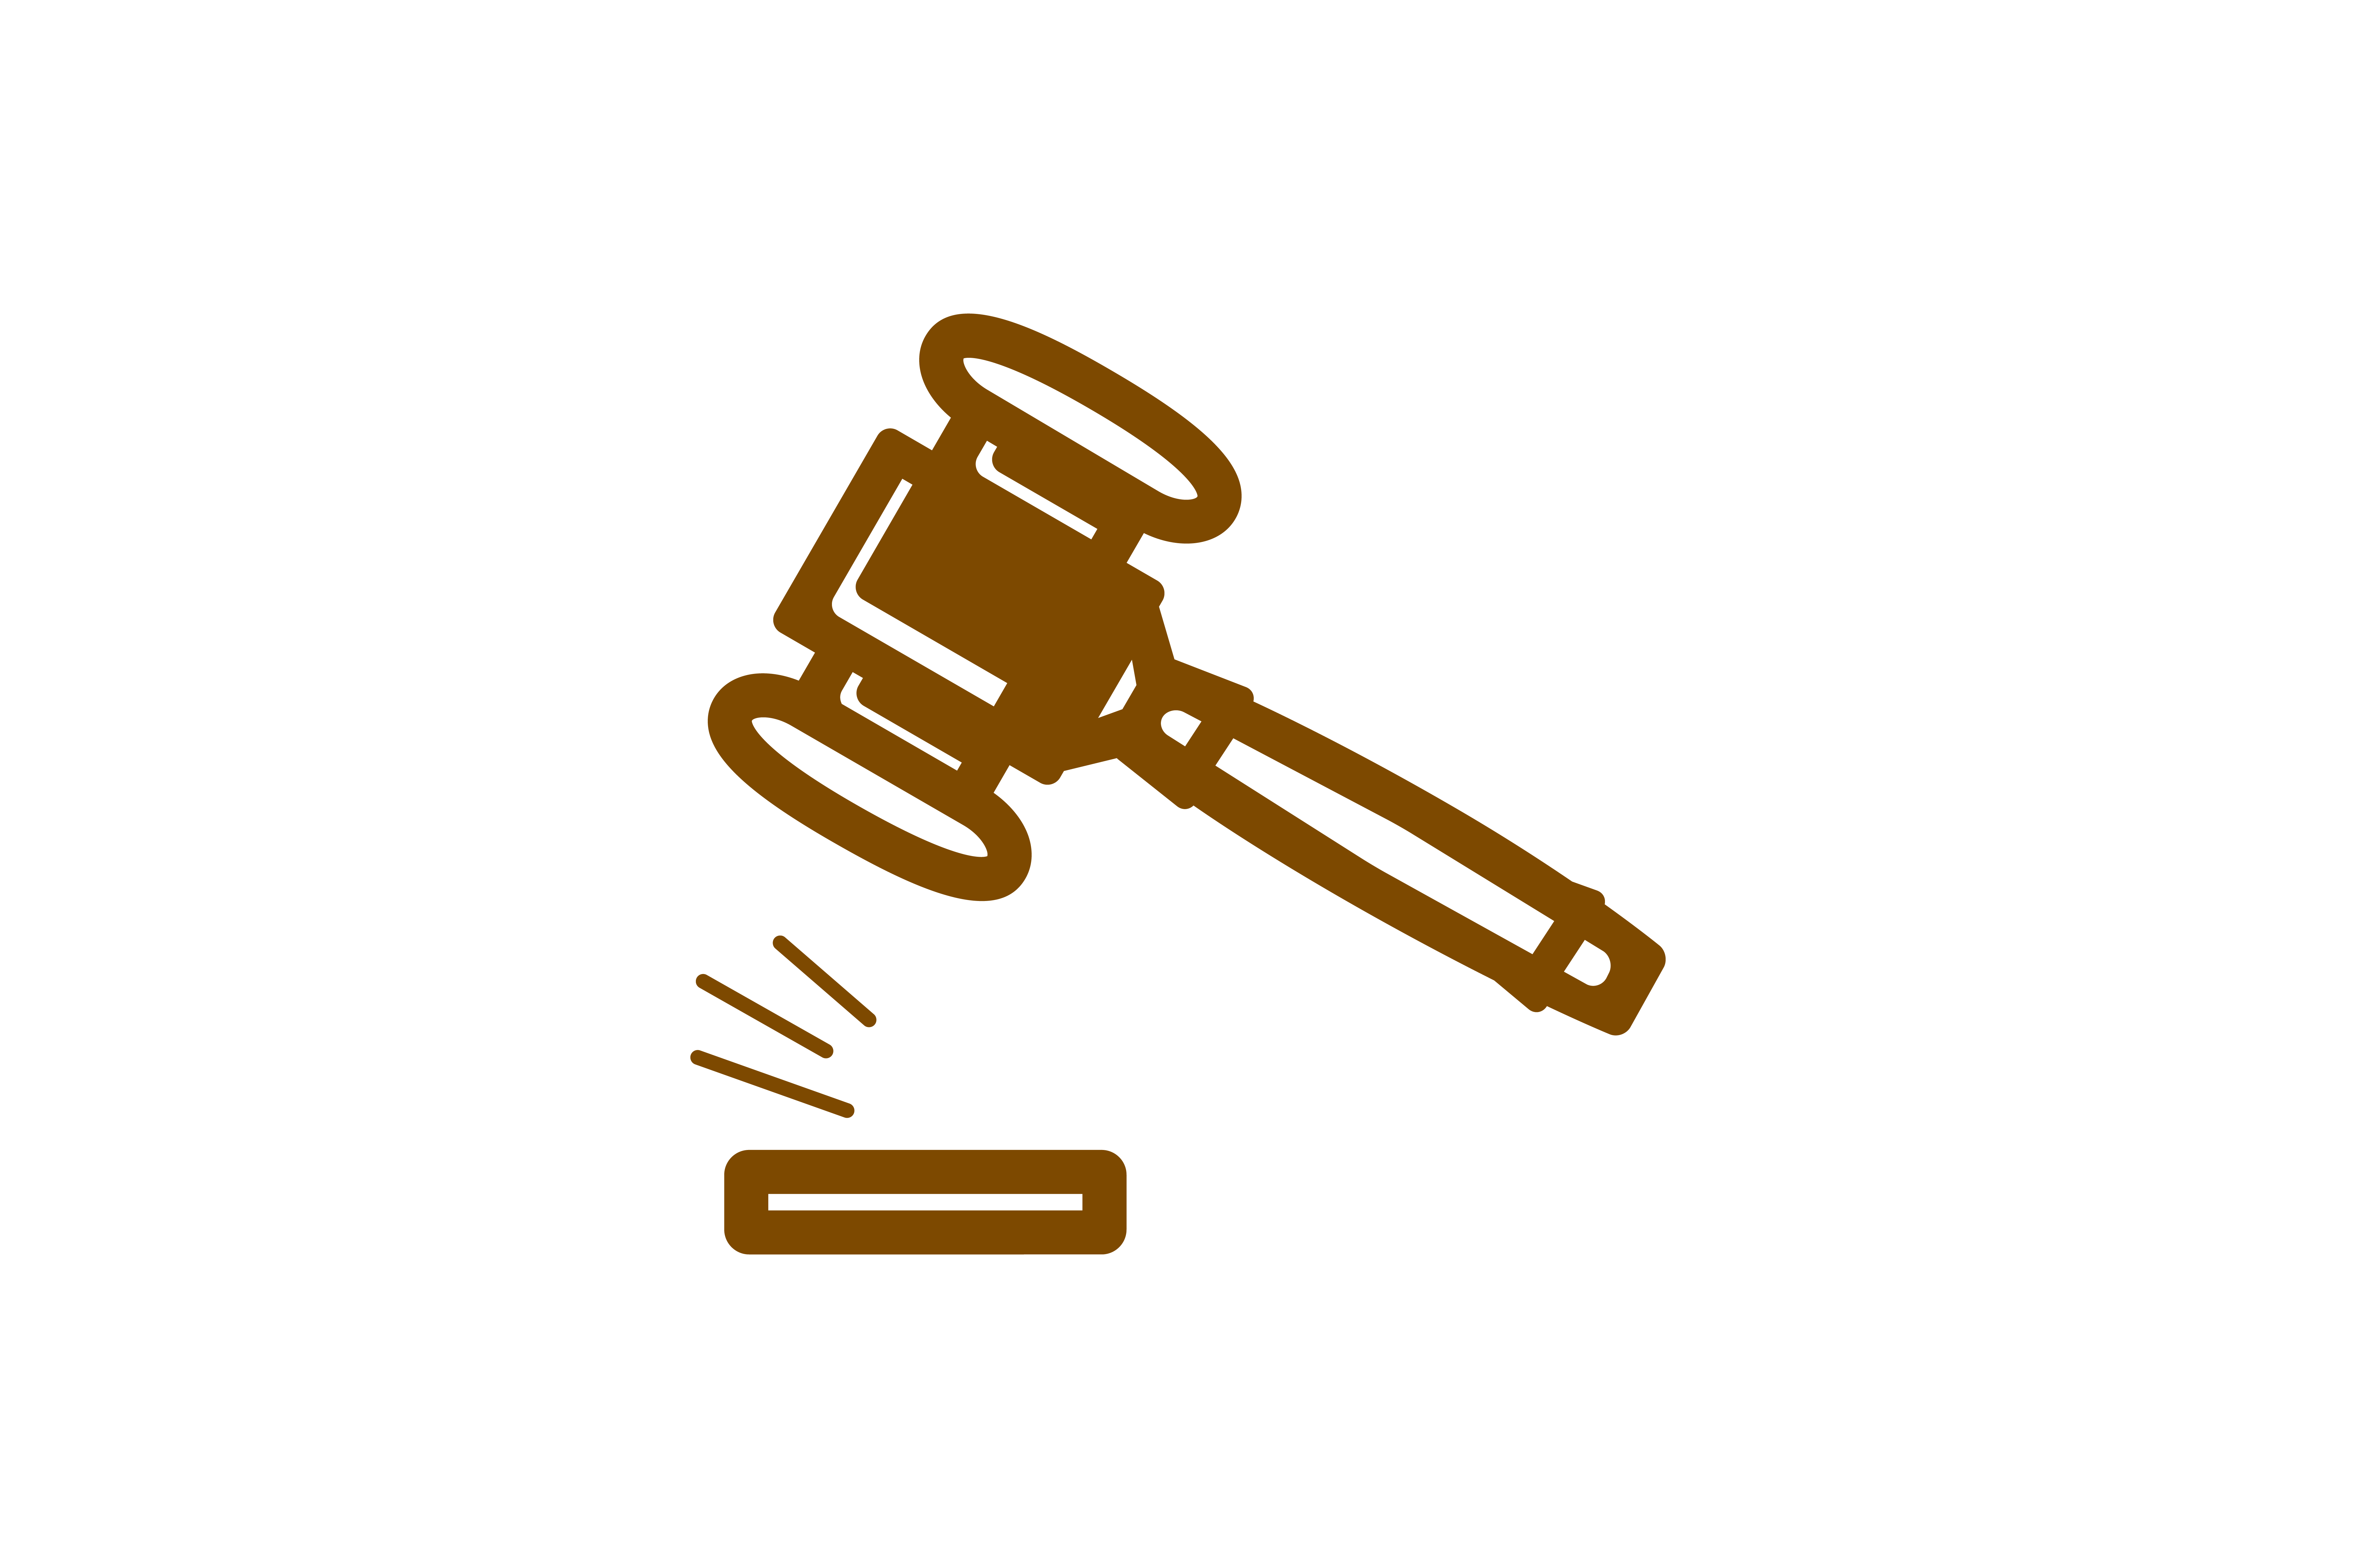 Download Free Justice Icon Graphic By Zafreeloicon Creative Fabrica for Cricut Explore, Silhouette and other cutting machines.